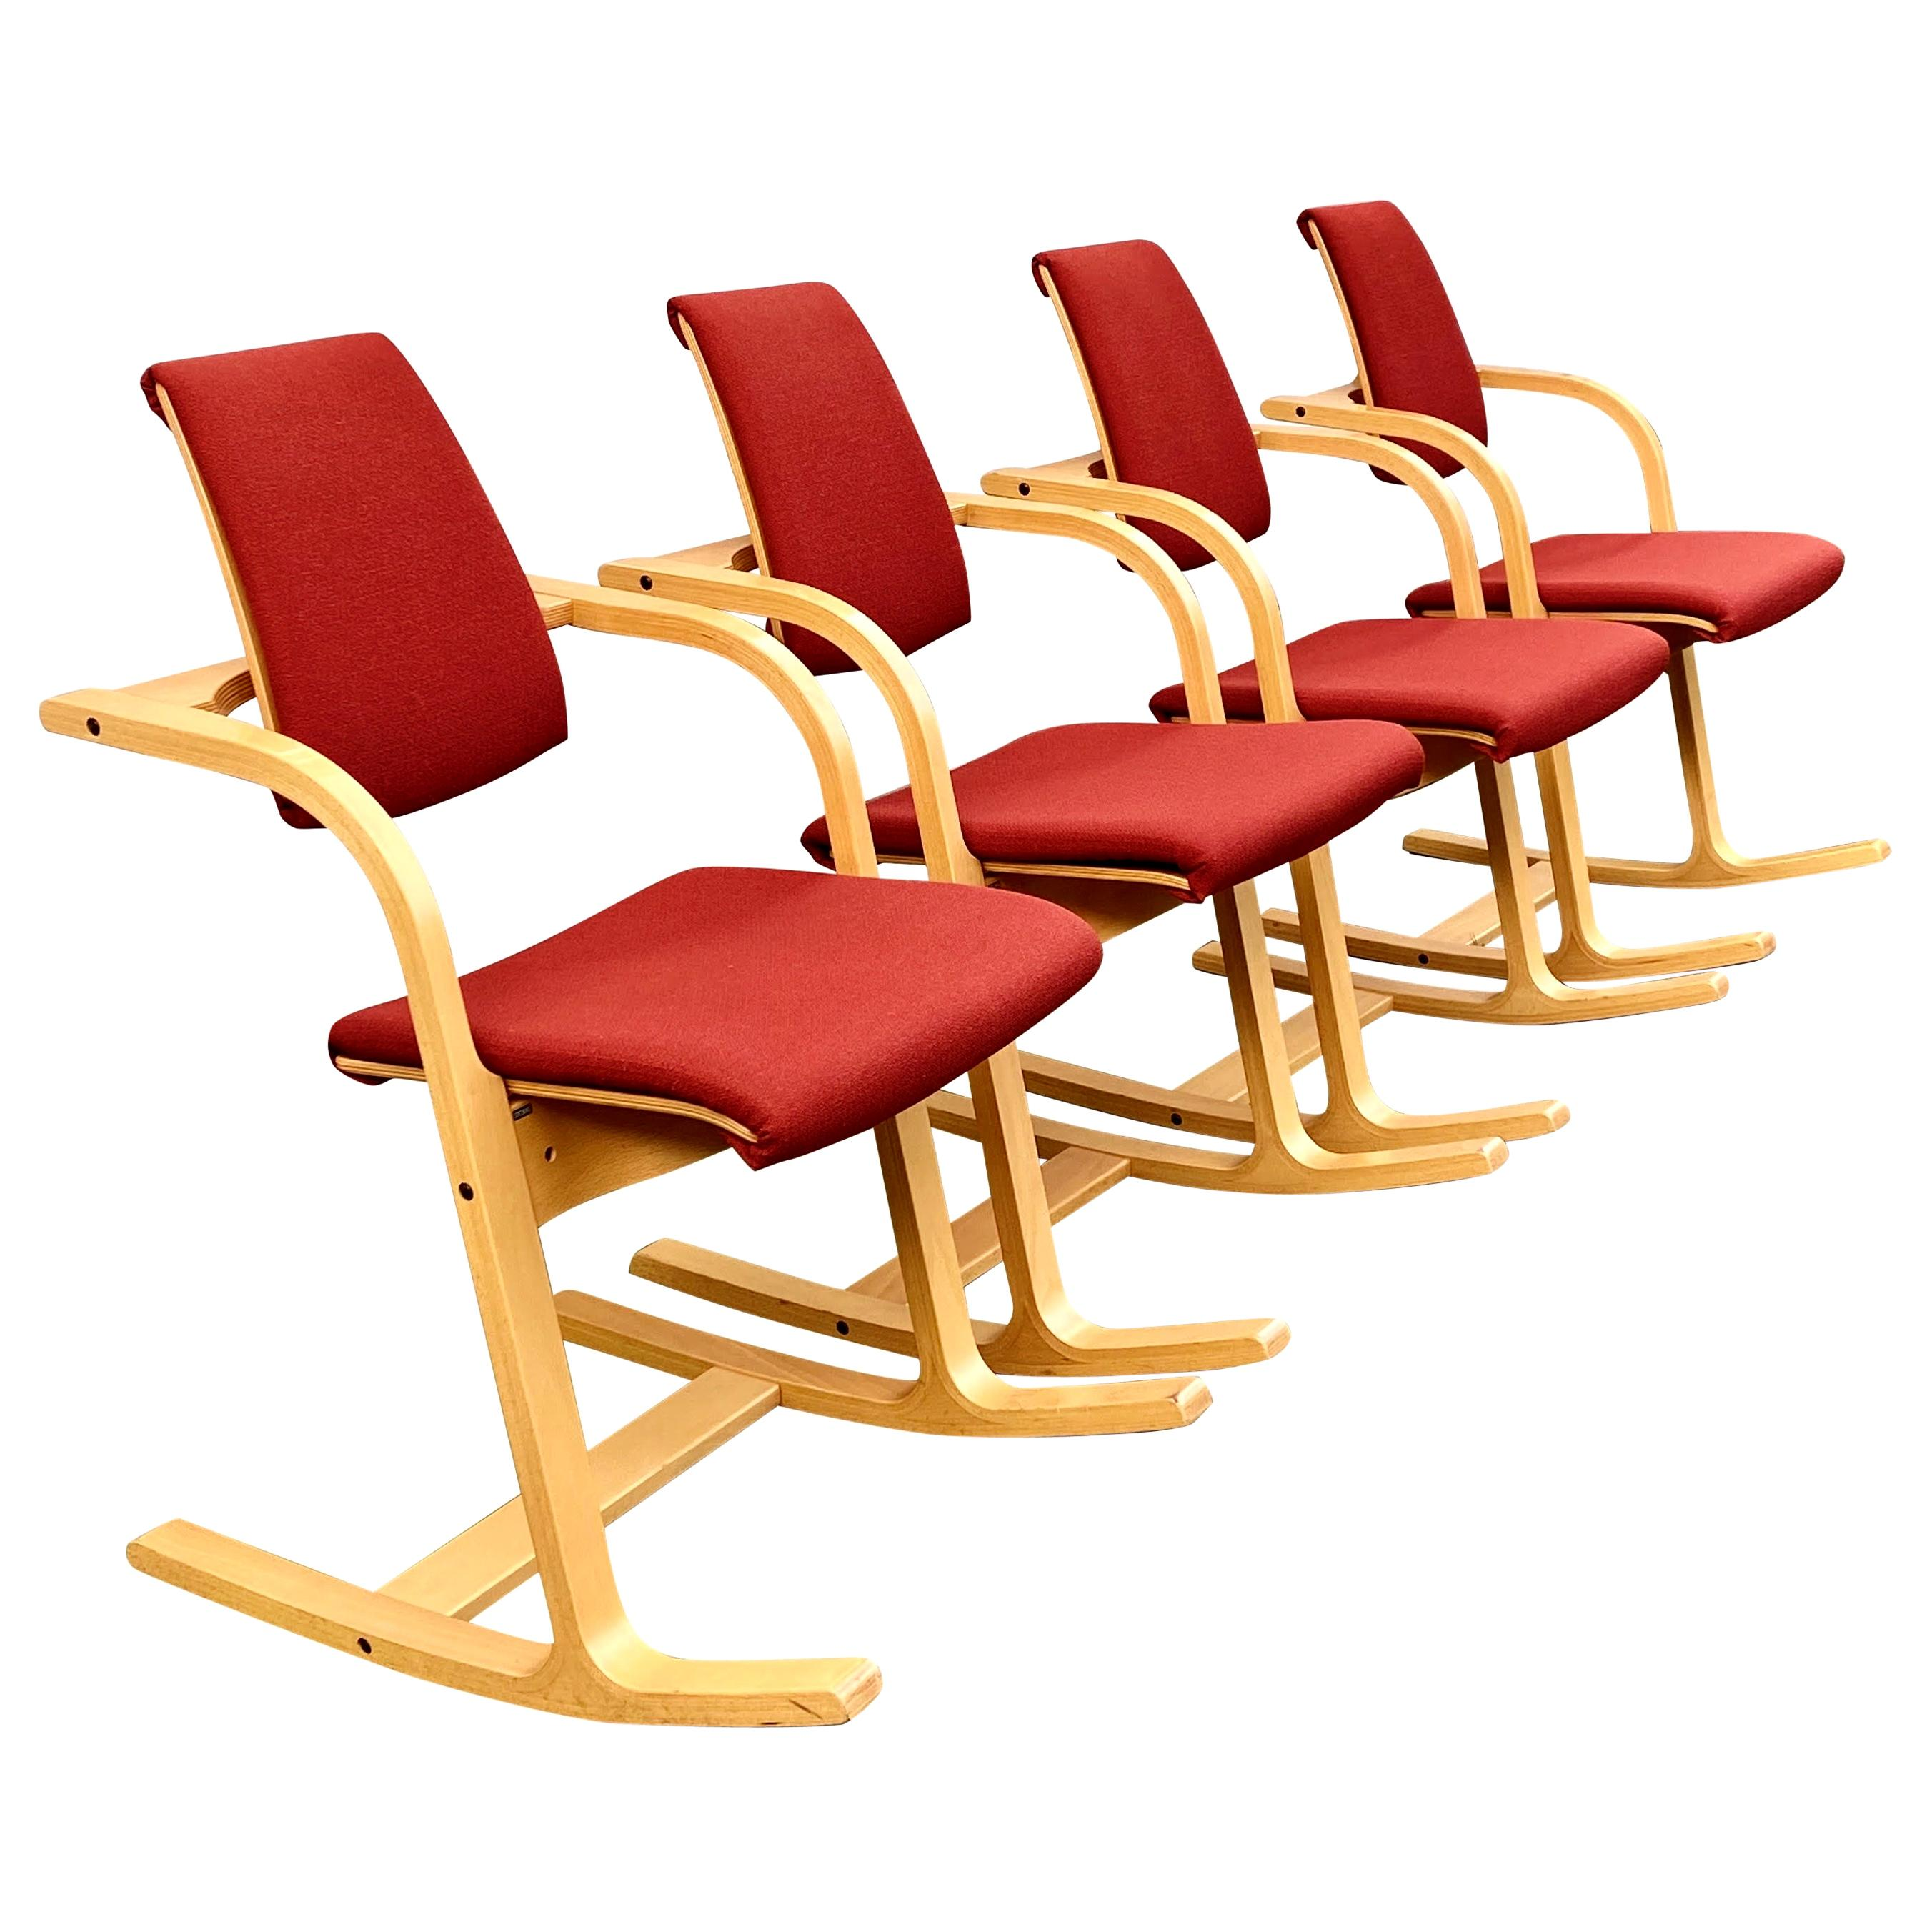 Stokke Varier Actulum, Balance Chairs, Dinner Chairs, Rocking Chairs